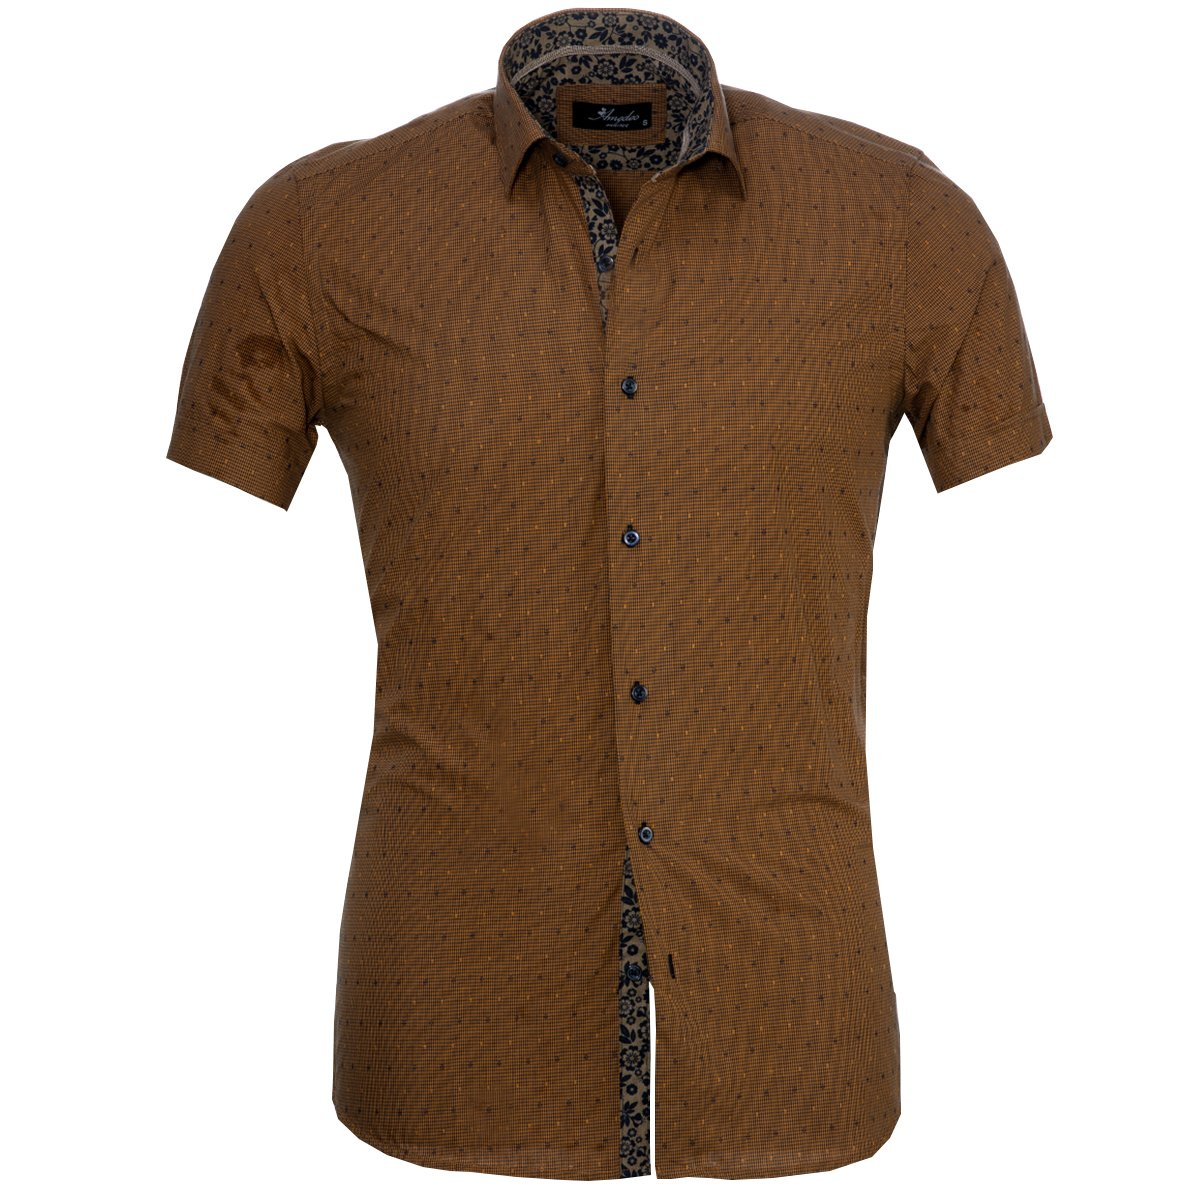 Men's Button down Tailor Fit Soft 100% Cotton Short Sleeve Dress Shirt Light Brown casual And Formal - Amedeo Exclusive